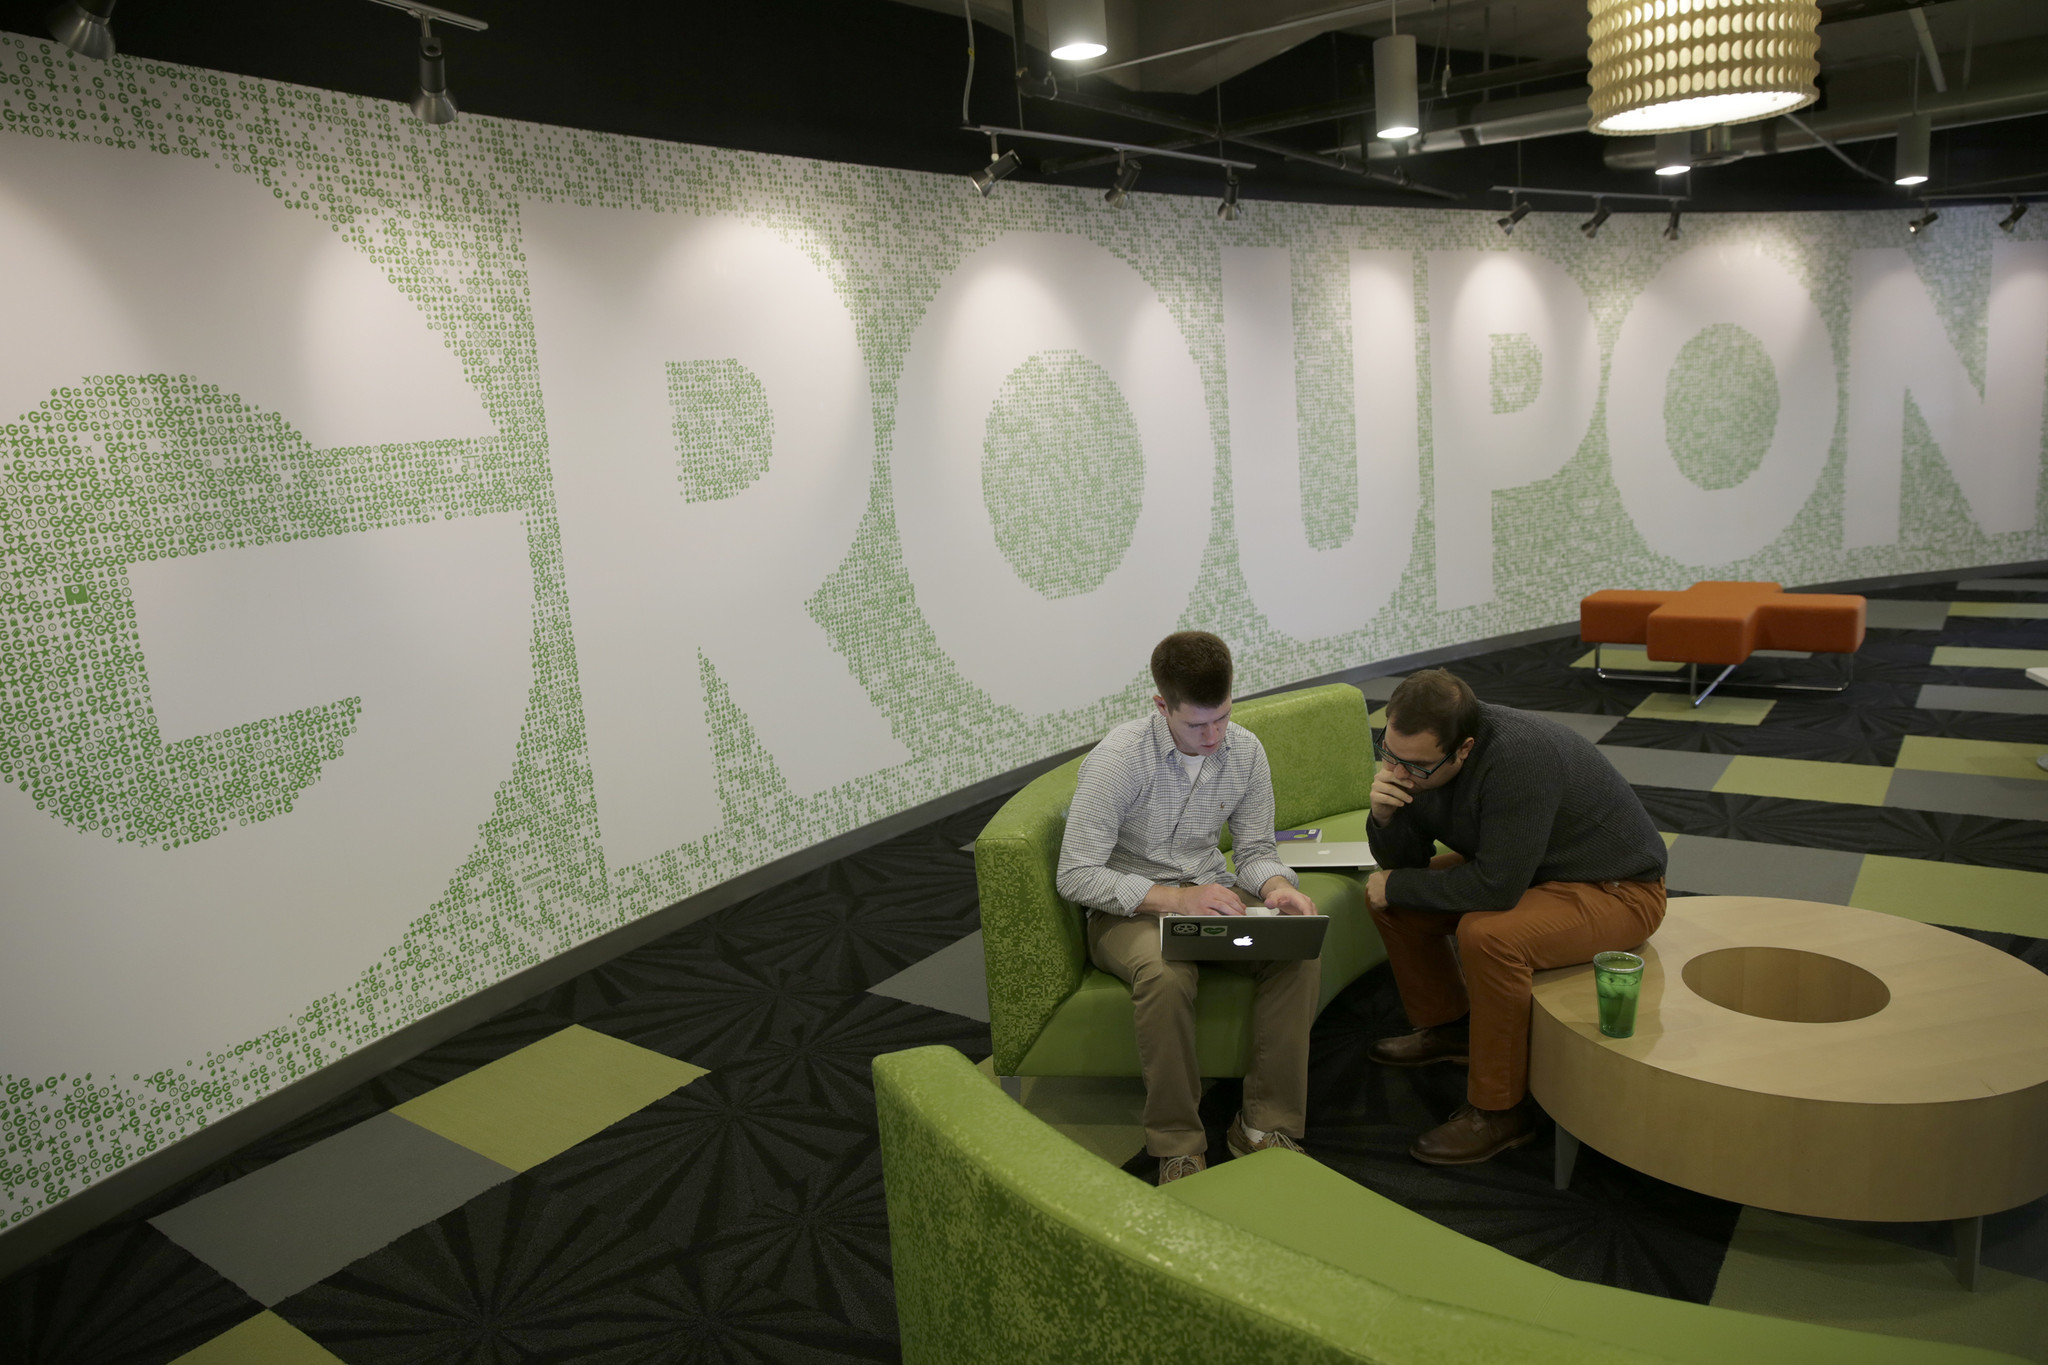 Report: Groupon among tech firms lacking in board diversity